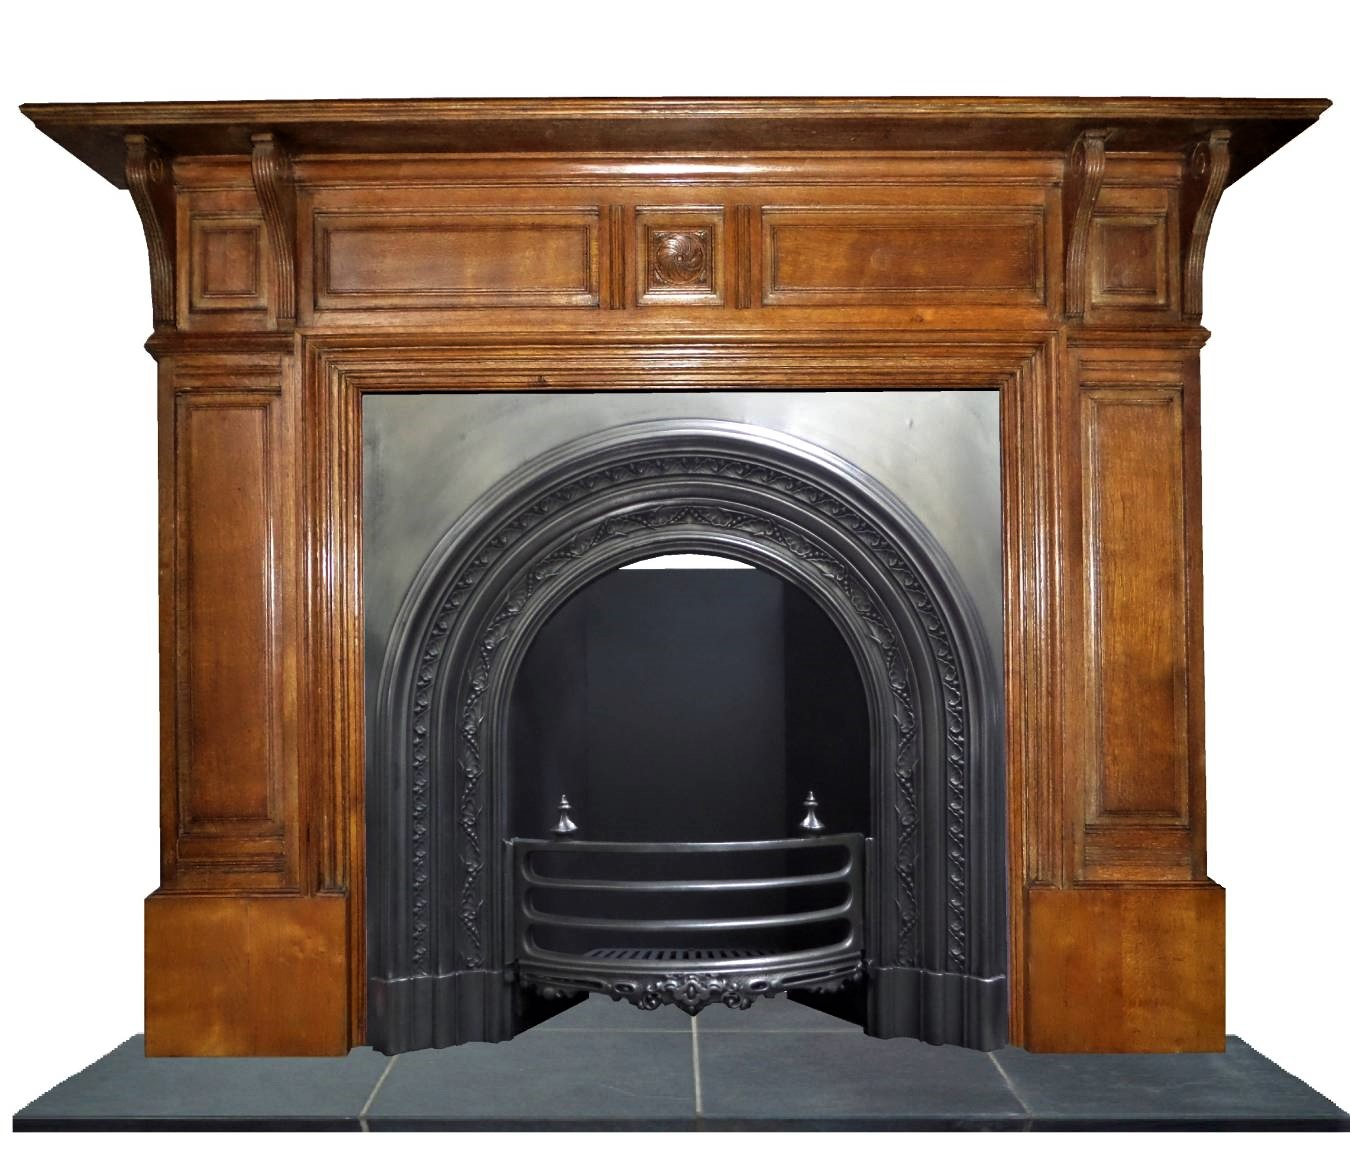 Buy Online Mid 19th Century Victorian Burnished Arched